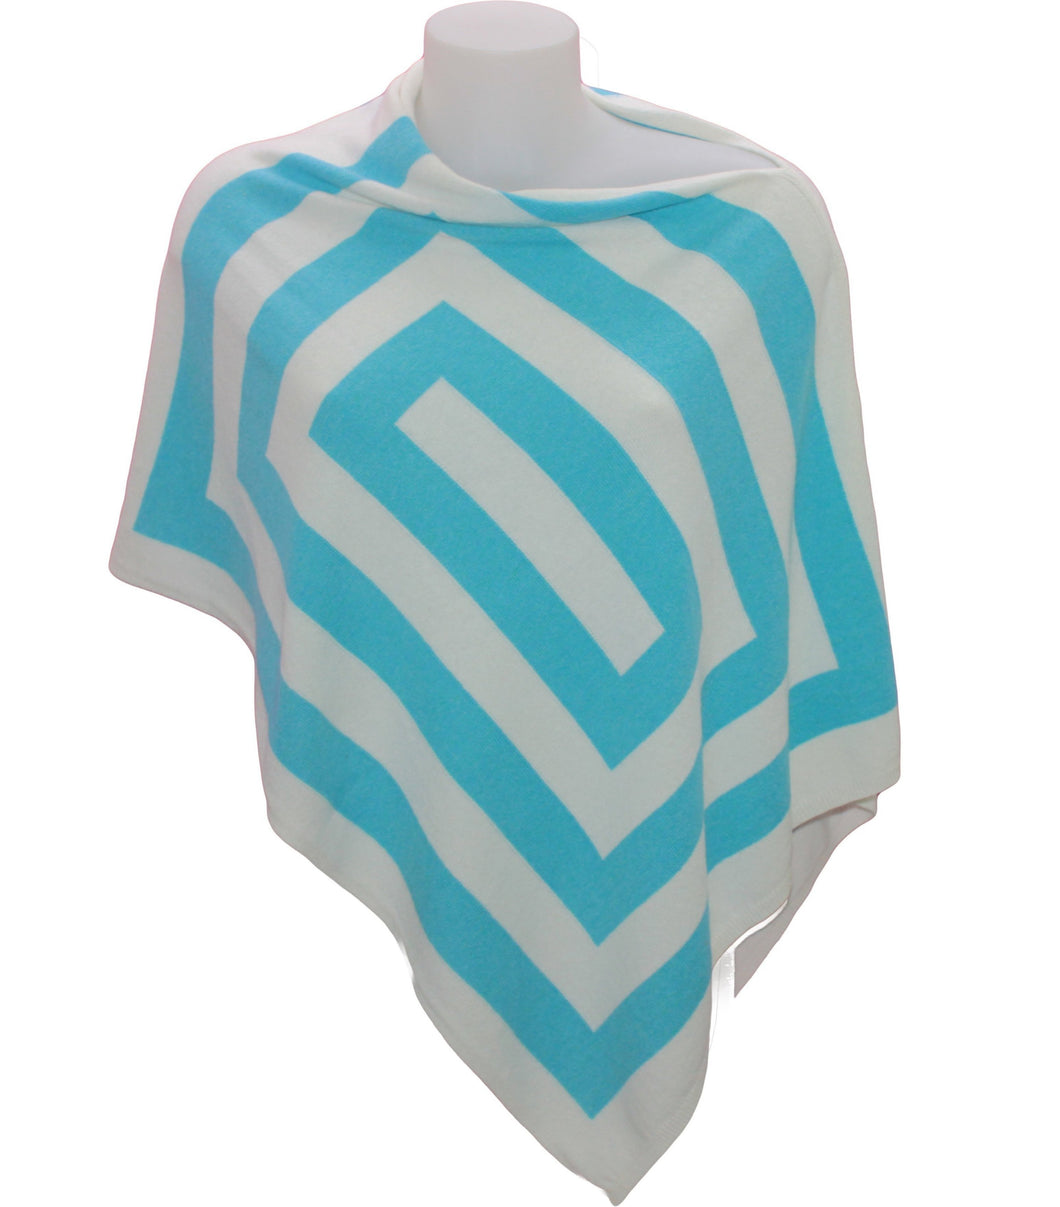 Poncho Cachemire Idee regalo Natale compra Cachemire online 1